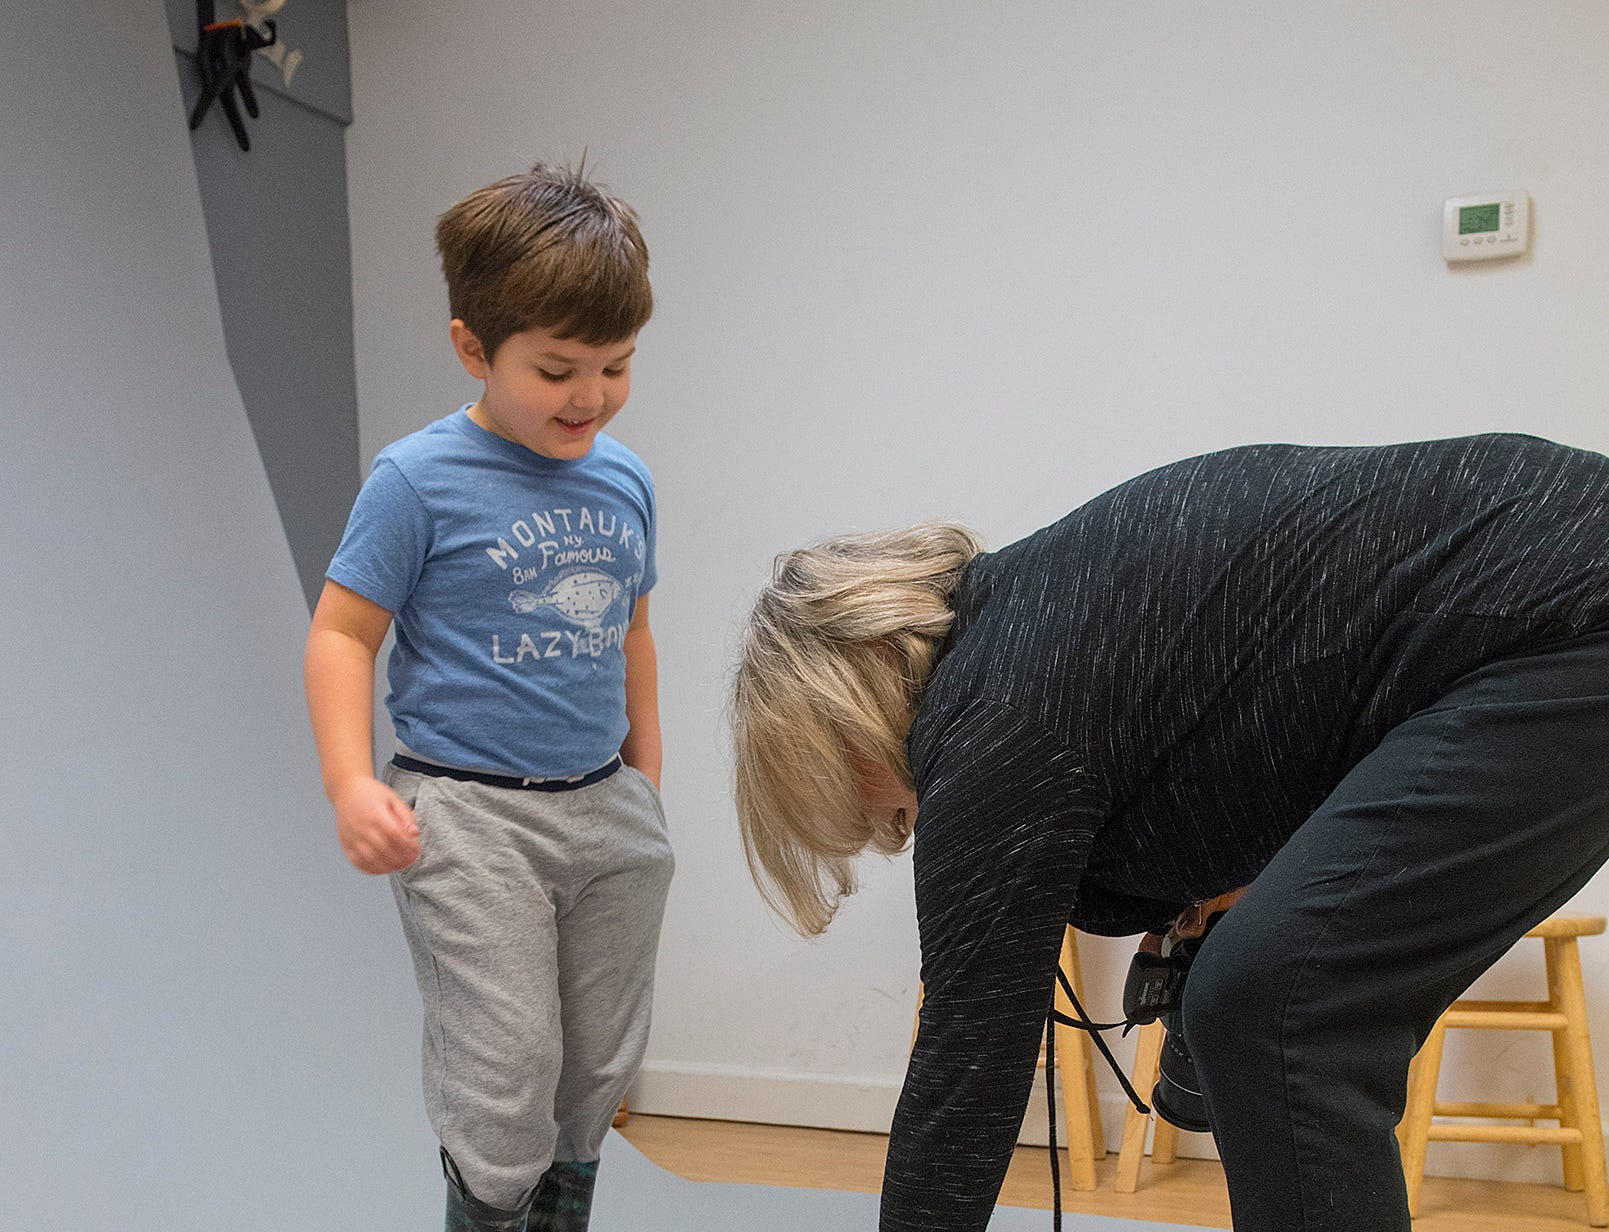 Photographer Elaine Yaker asks five year old David Rea to stand right here. He's having none of it.